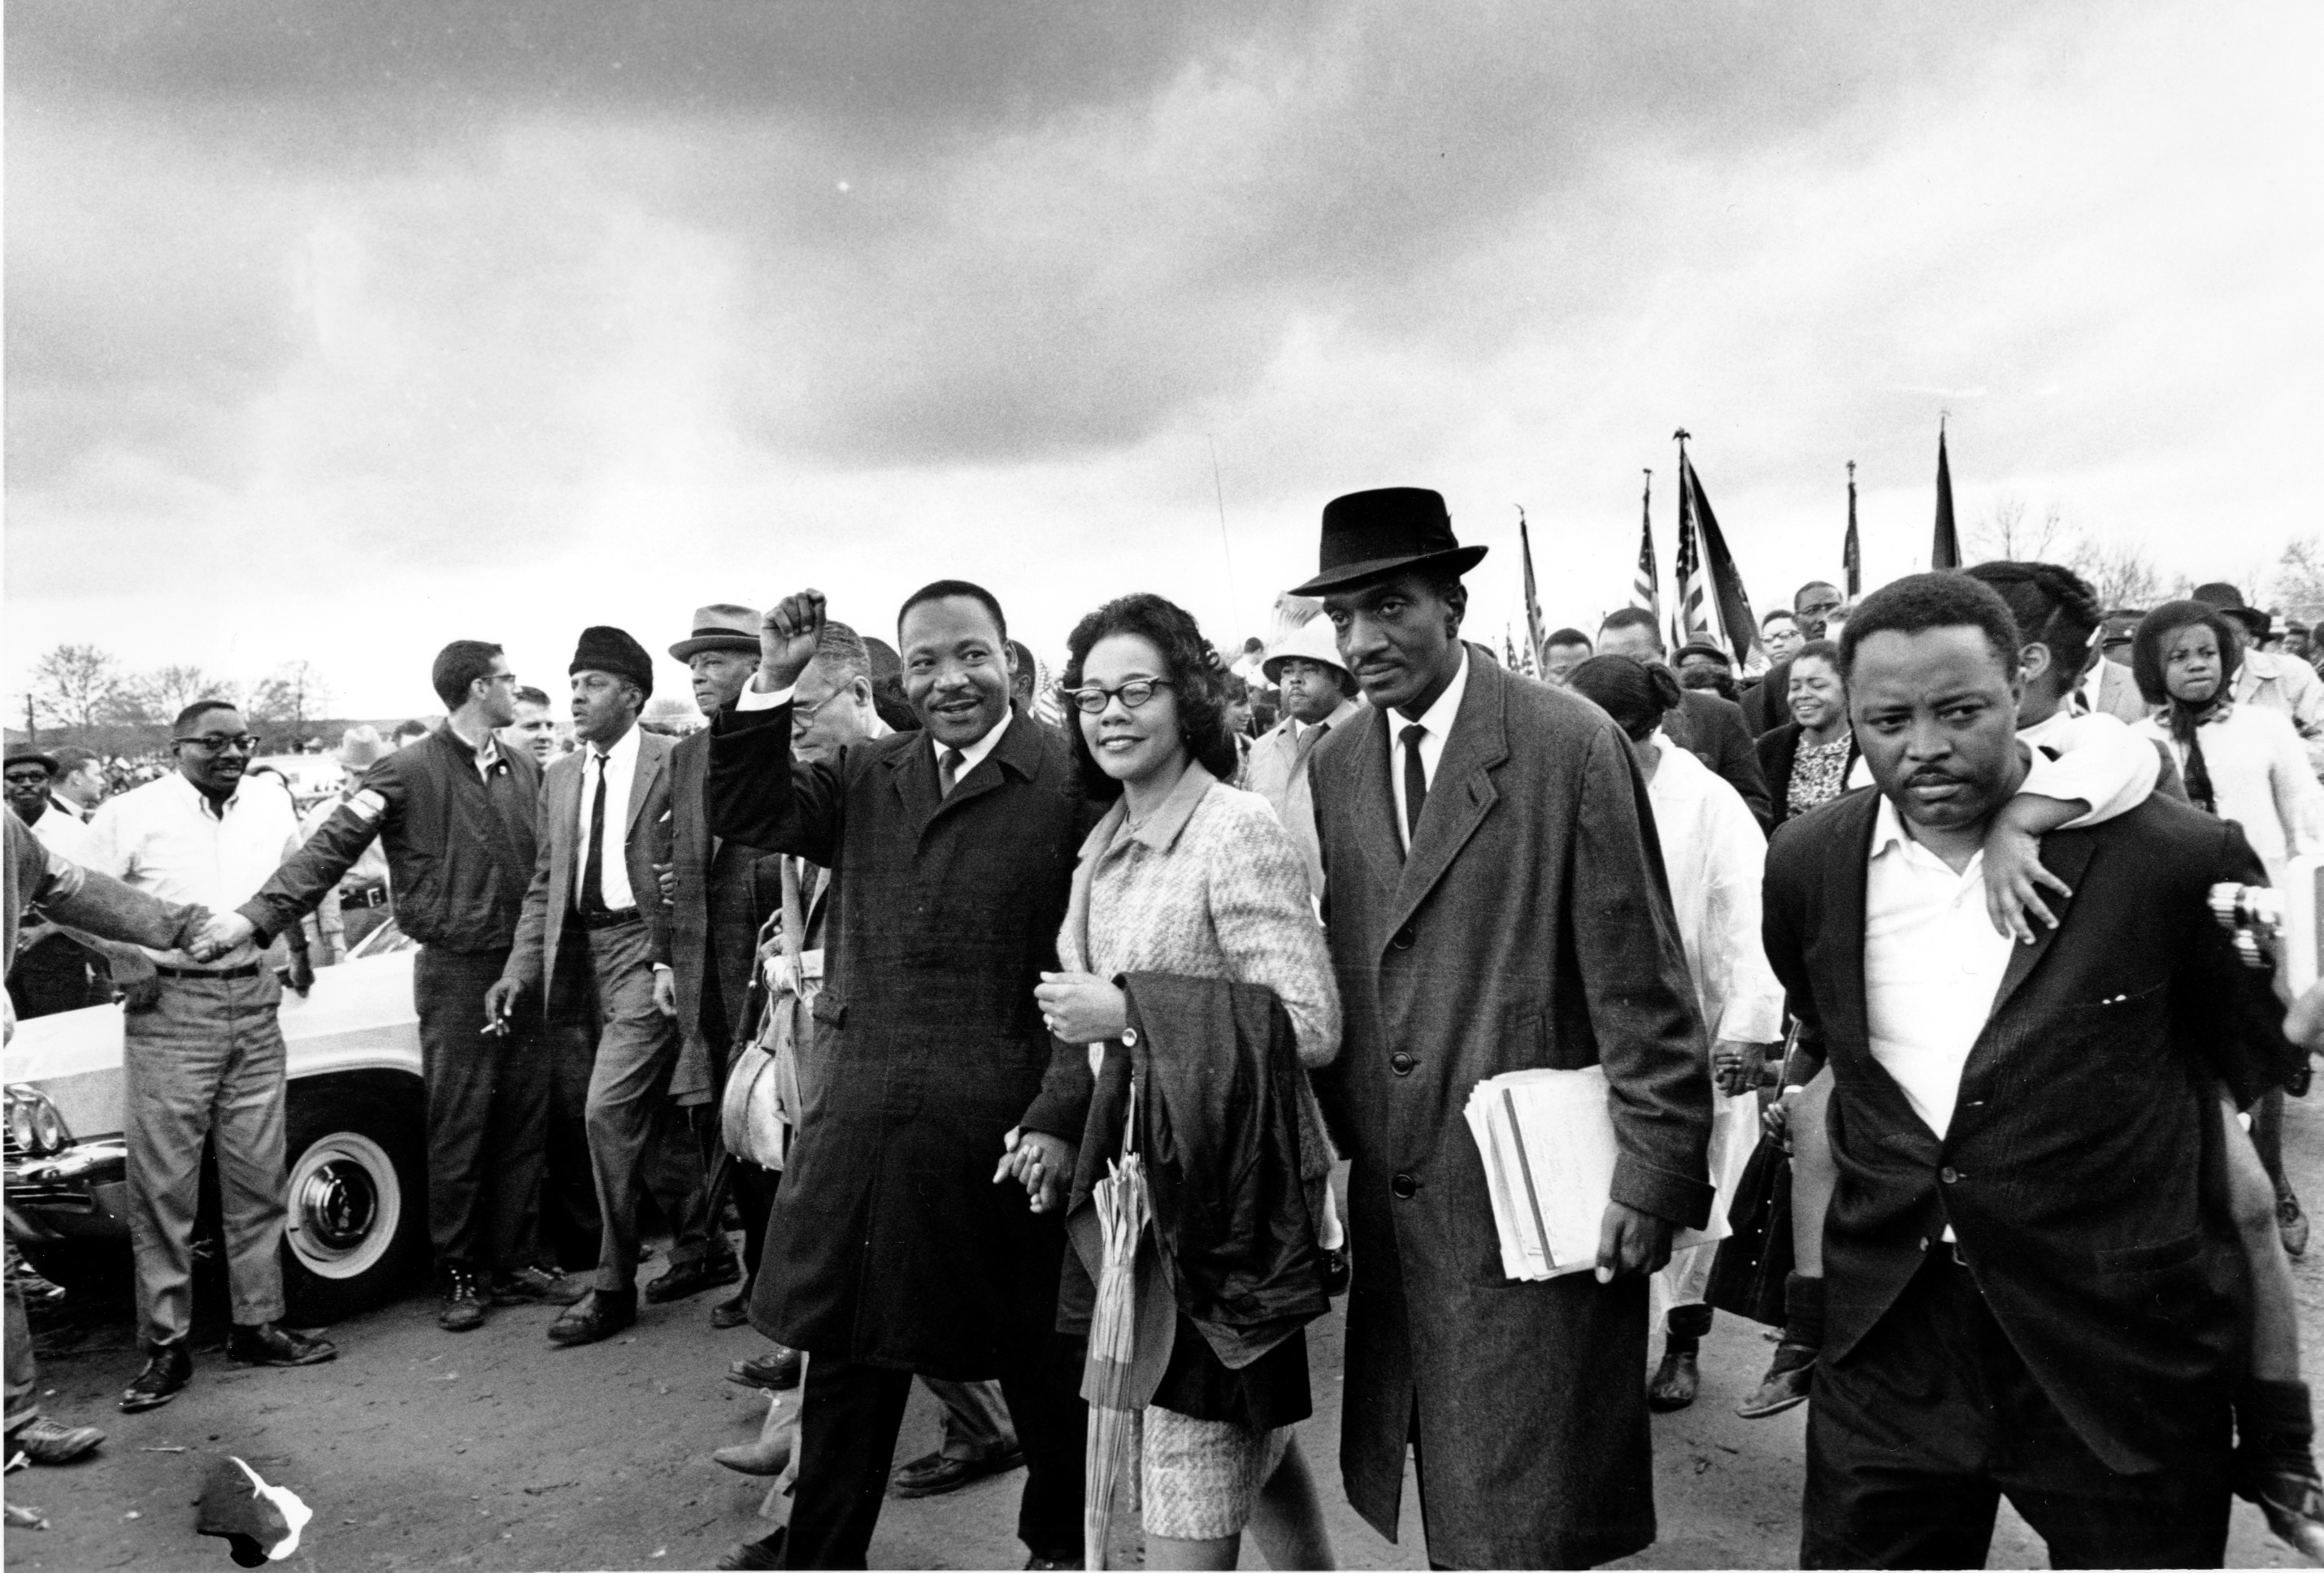 Martin Luther King and Coretta Scott King with group of people (© AP Images)